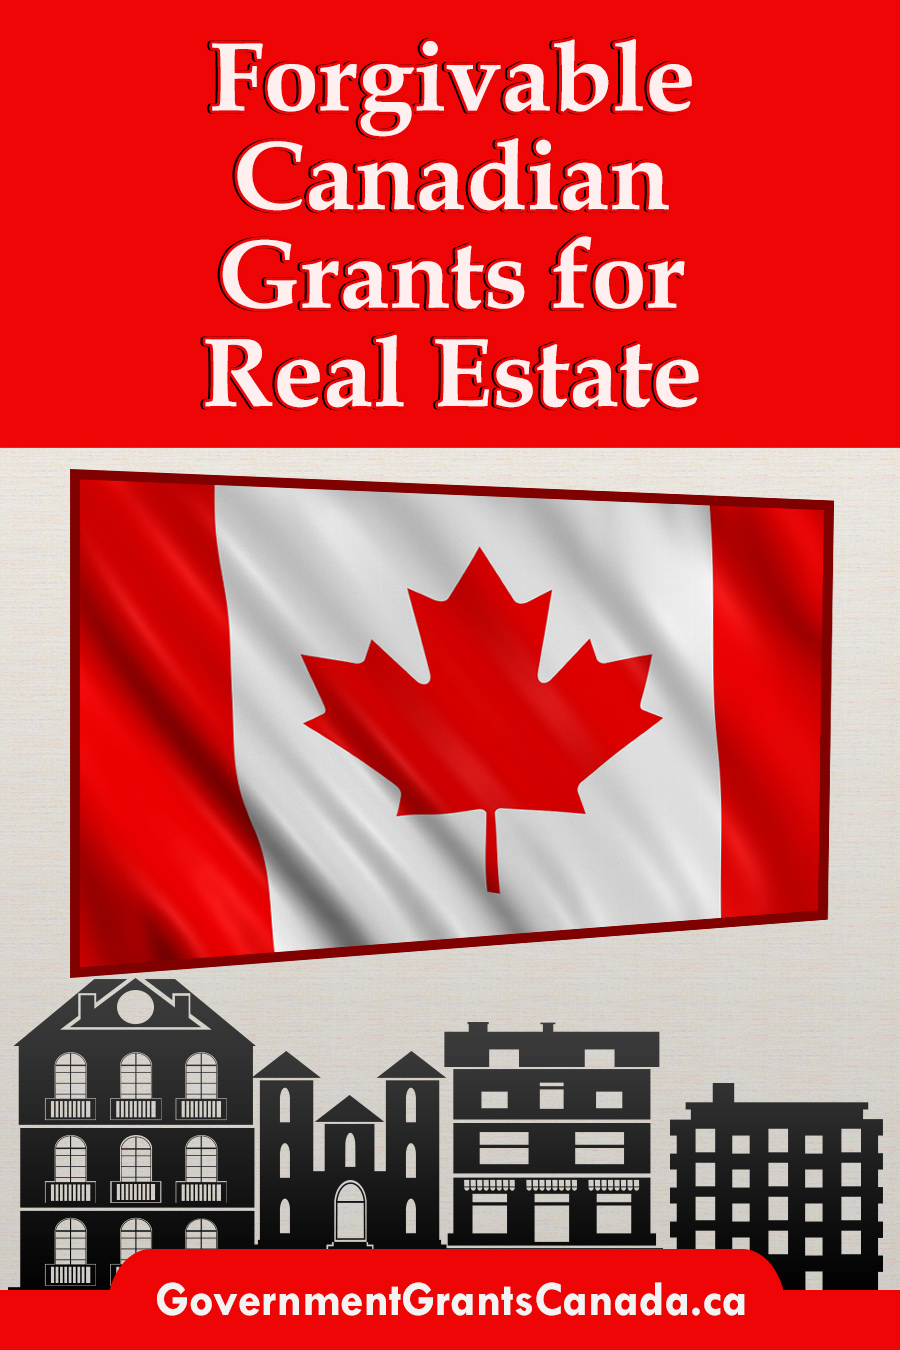 Forgivable Canadian Grants for Real Estate, Government Grants Canada, Forgivable Canadian grants, Government Grants, Real estate grants